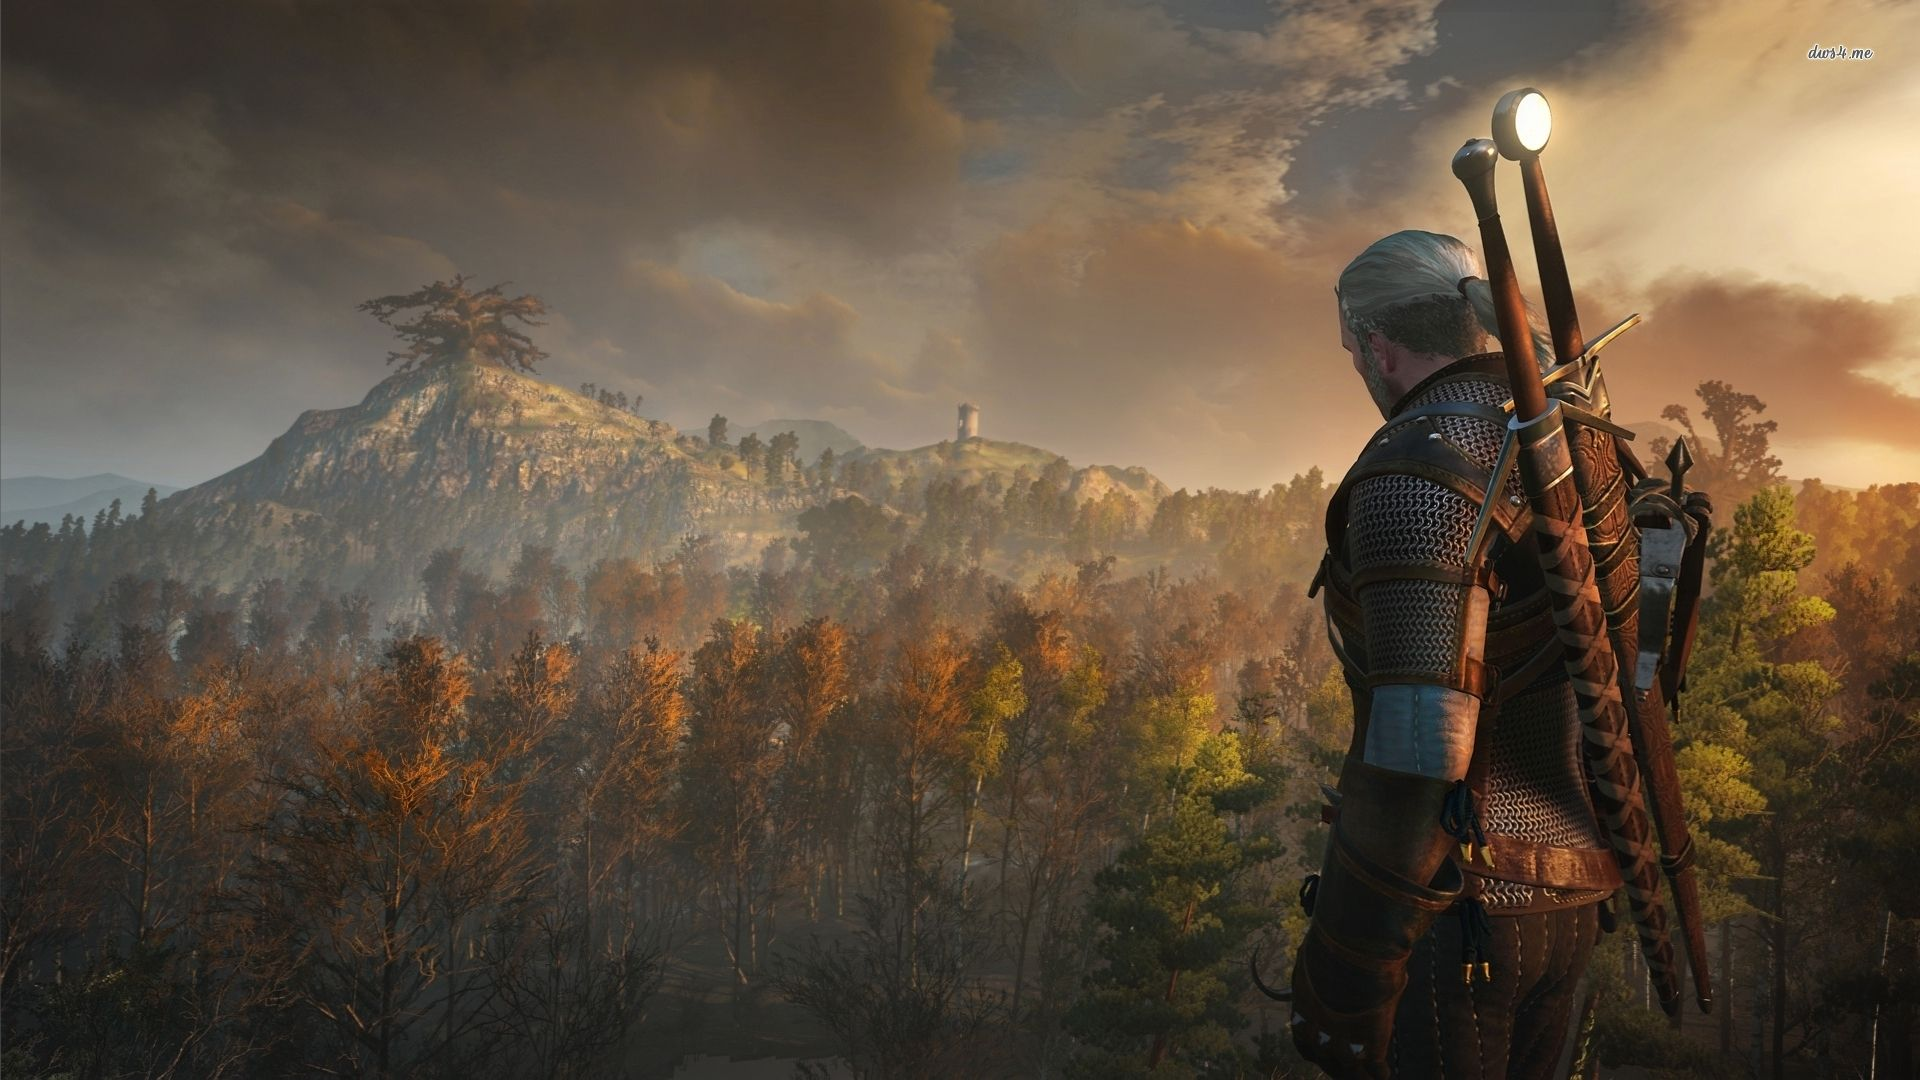 The Witcher Wild Hunt Wallpapers Hd Wallpapers In 2019 The